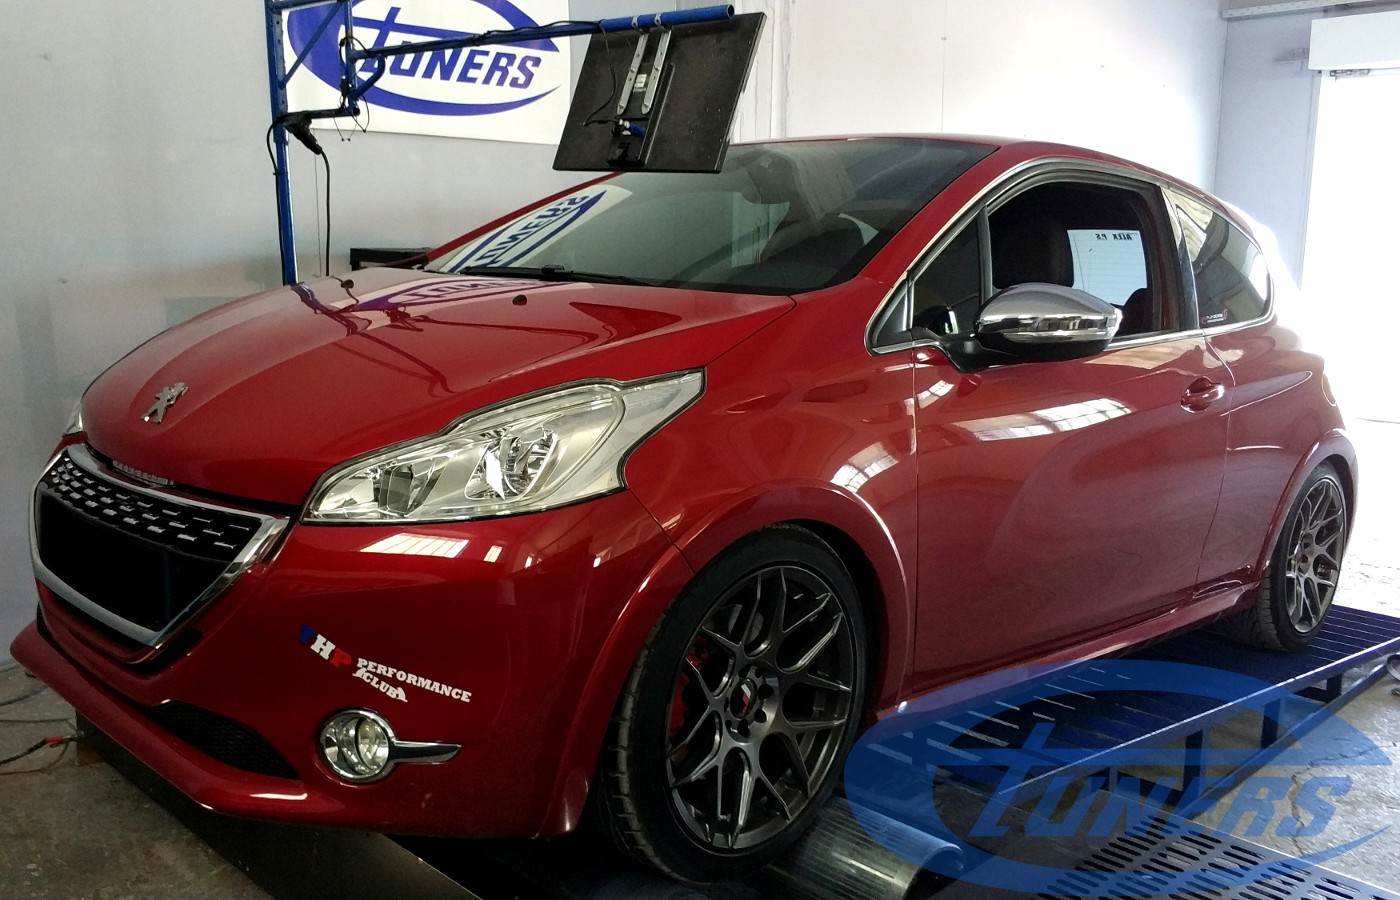 Peugeot 208 GTI 1.6T THP200 - Etuners stage4 hybrid 98ron